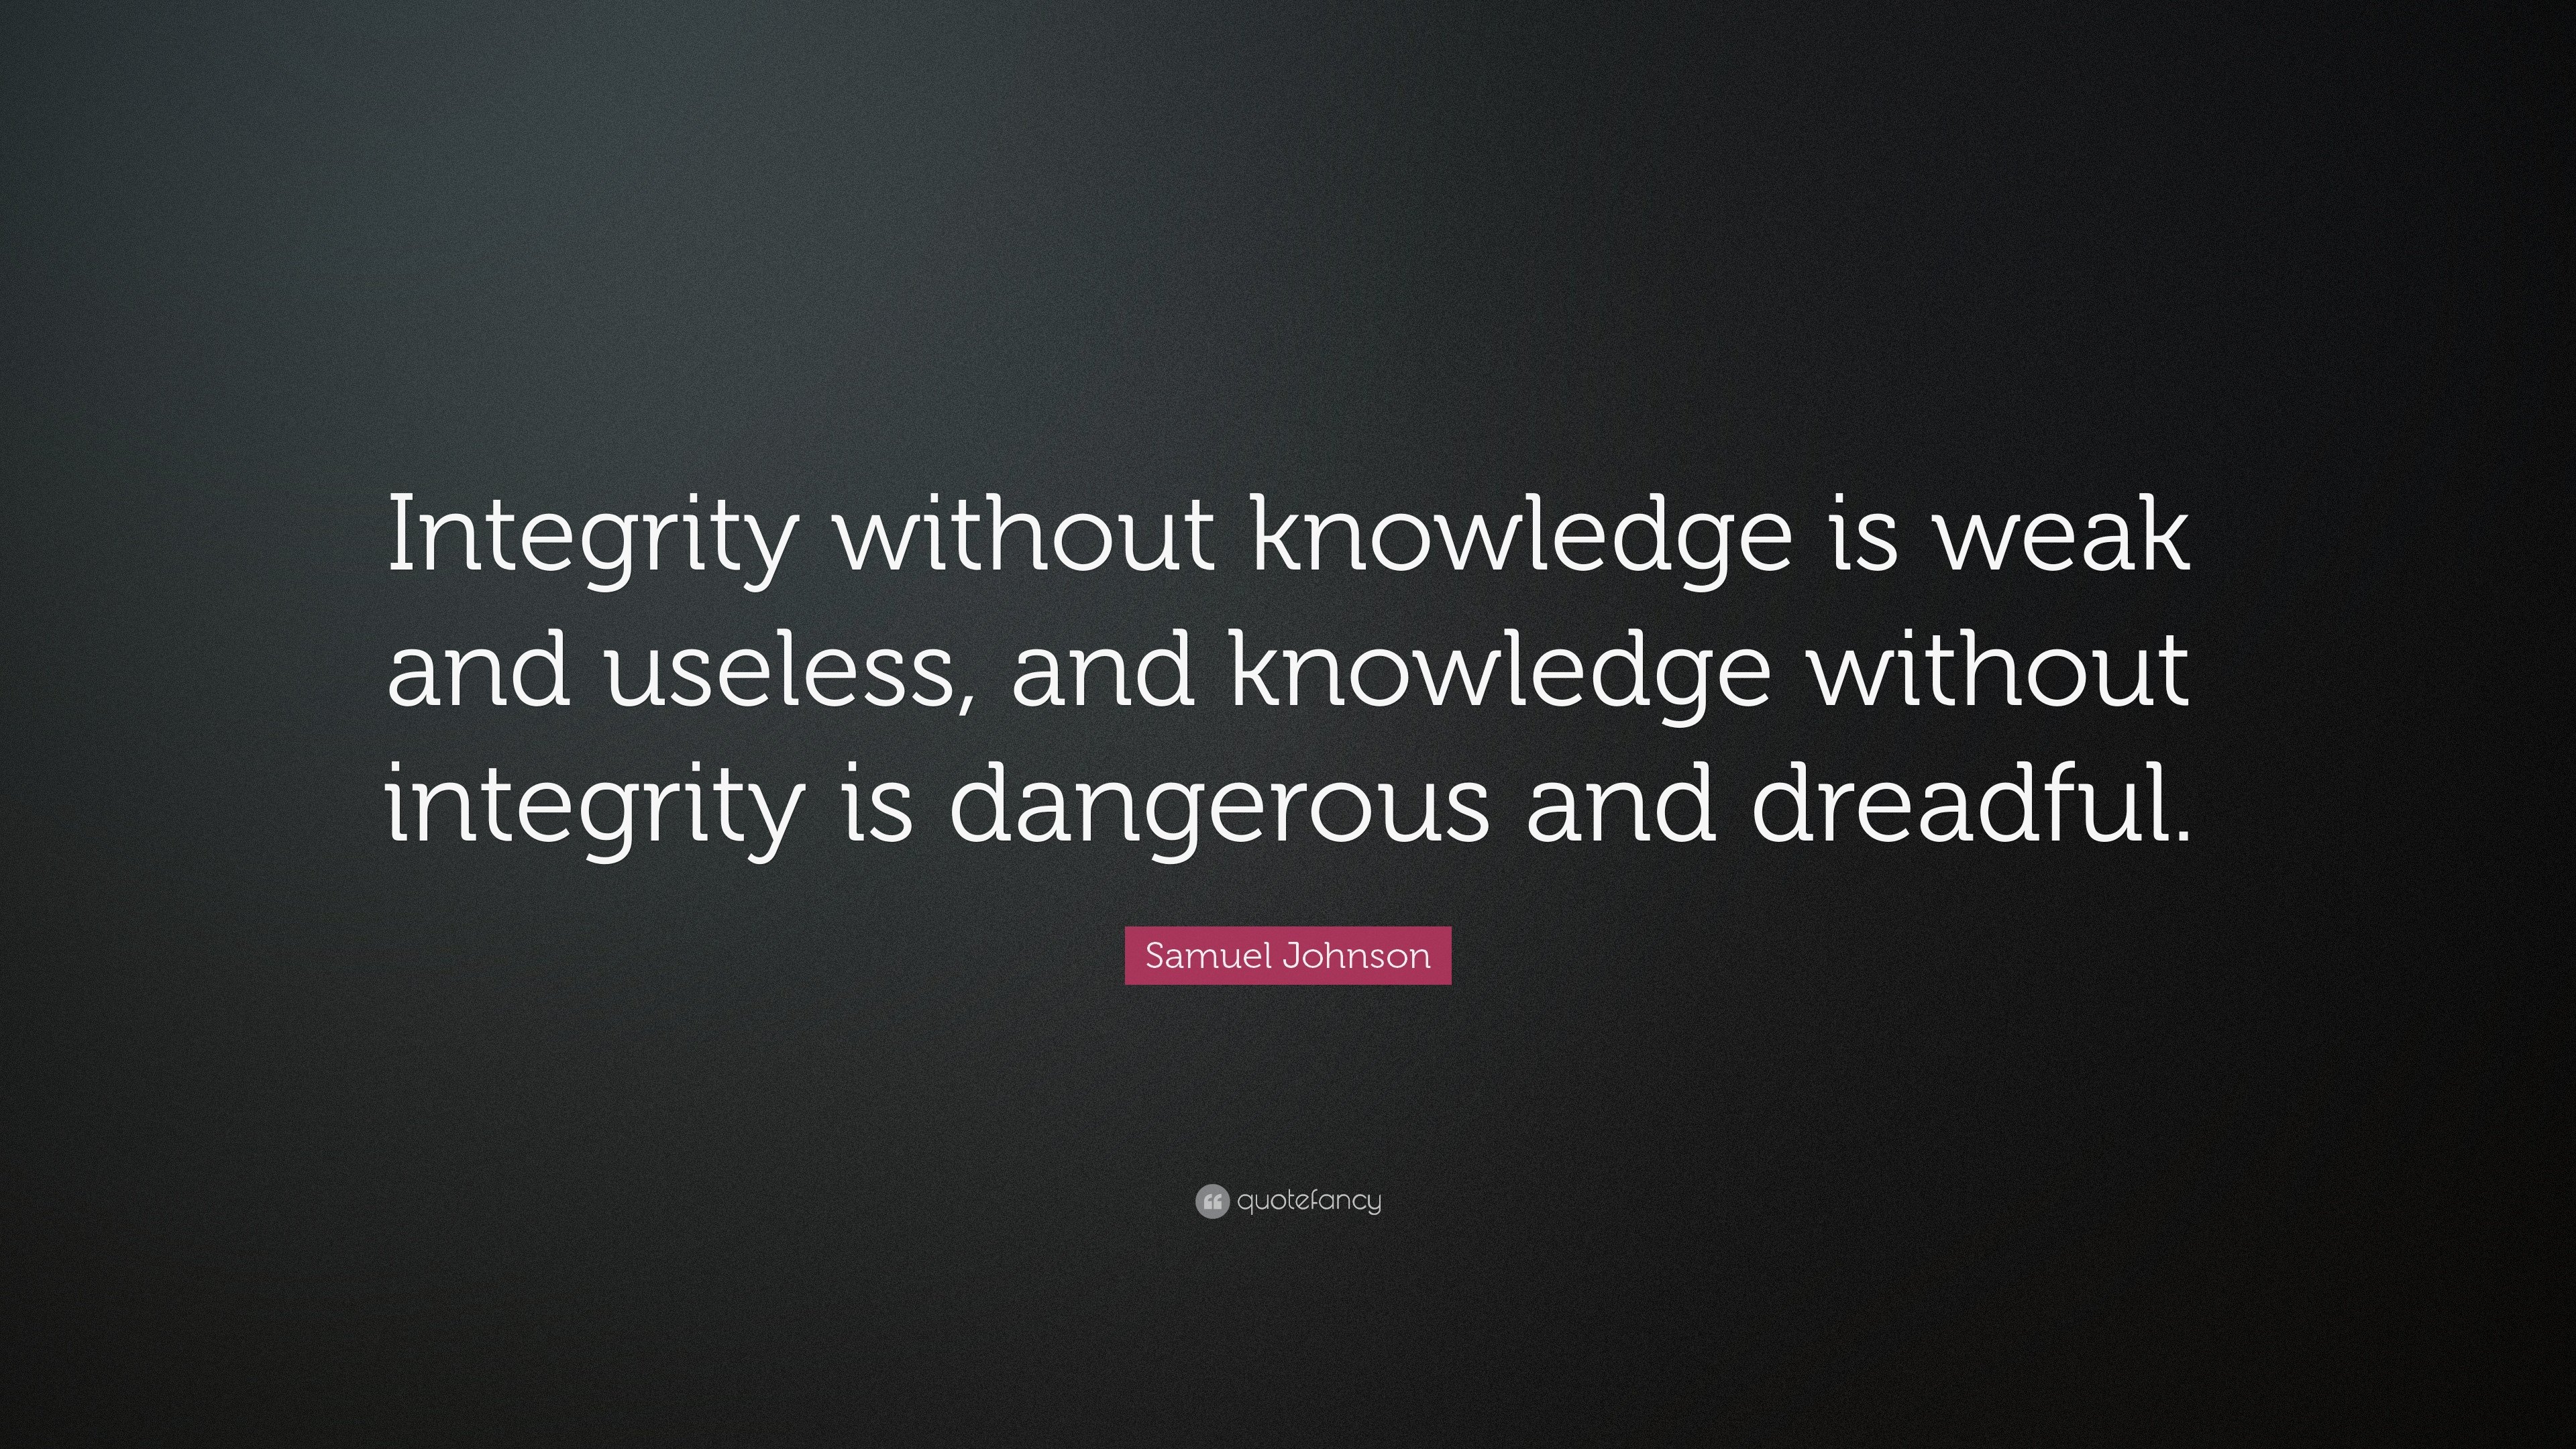 Knowledge without integrity is dangerous and